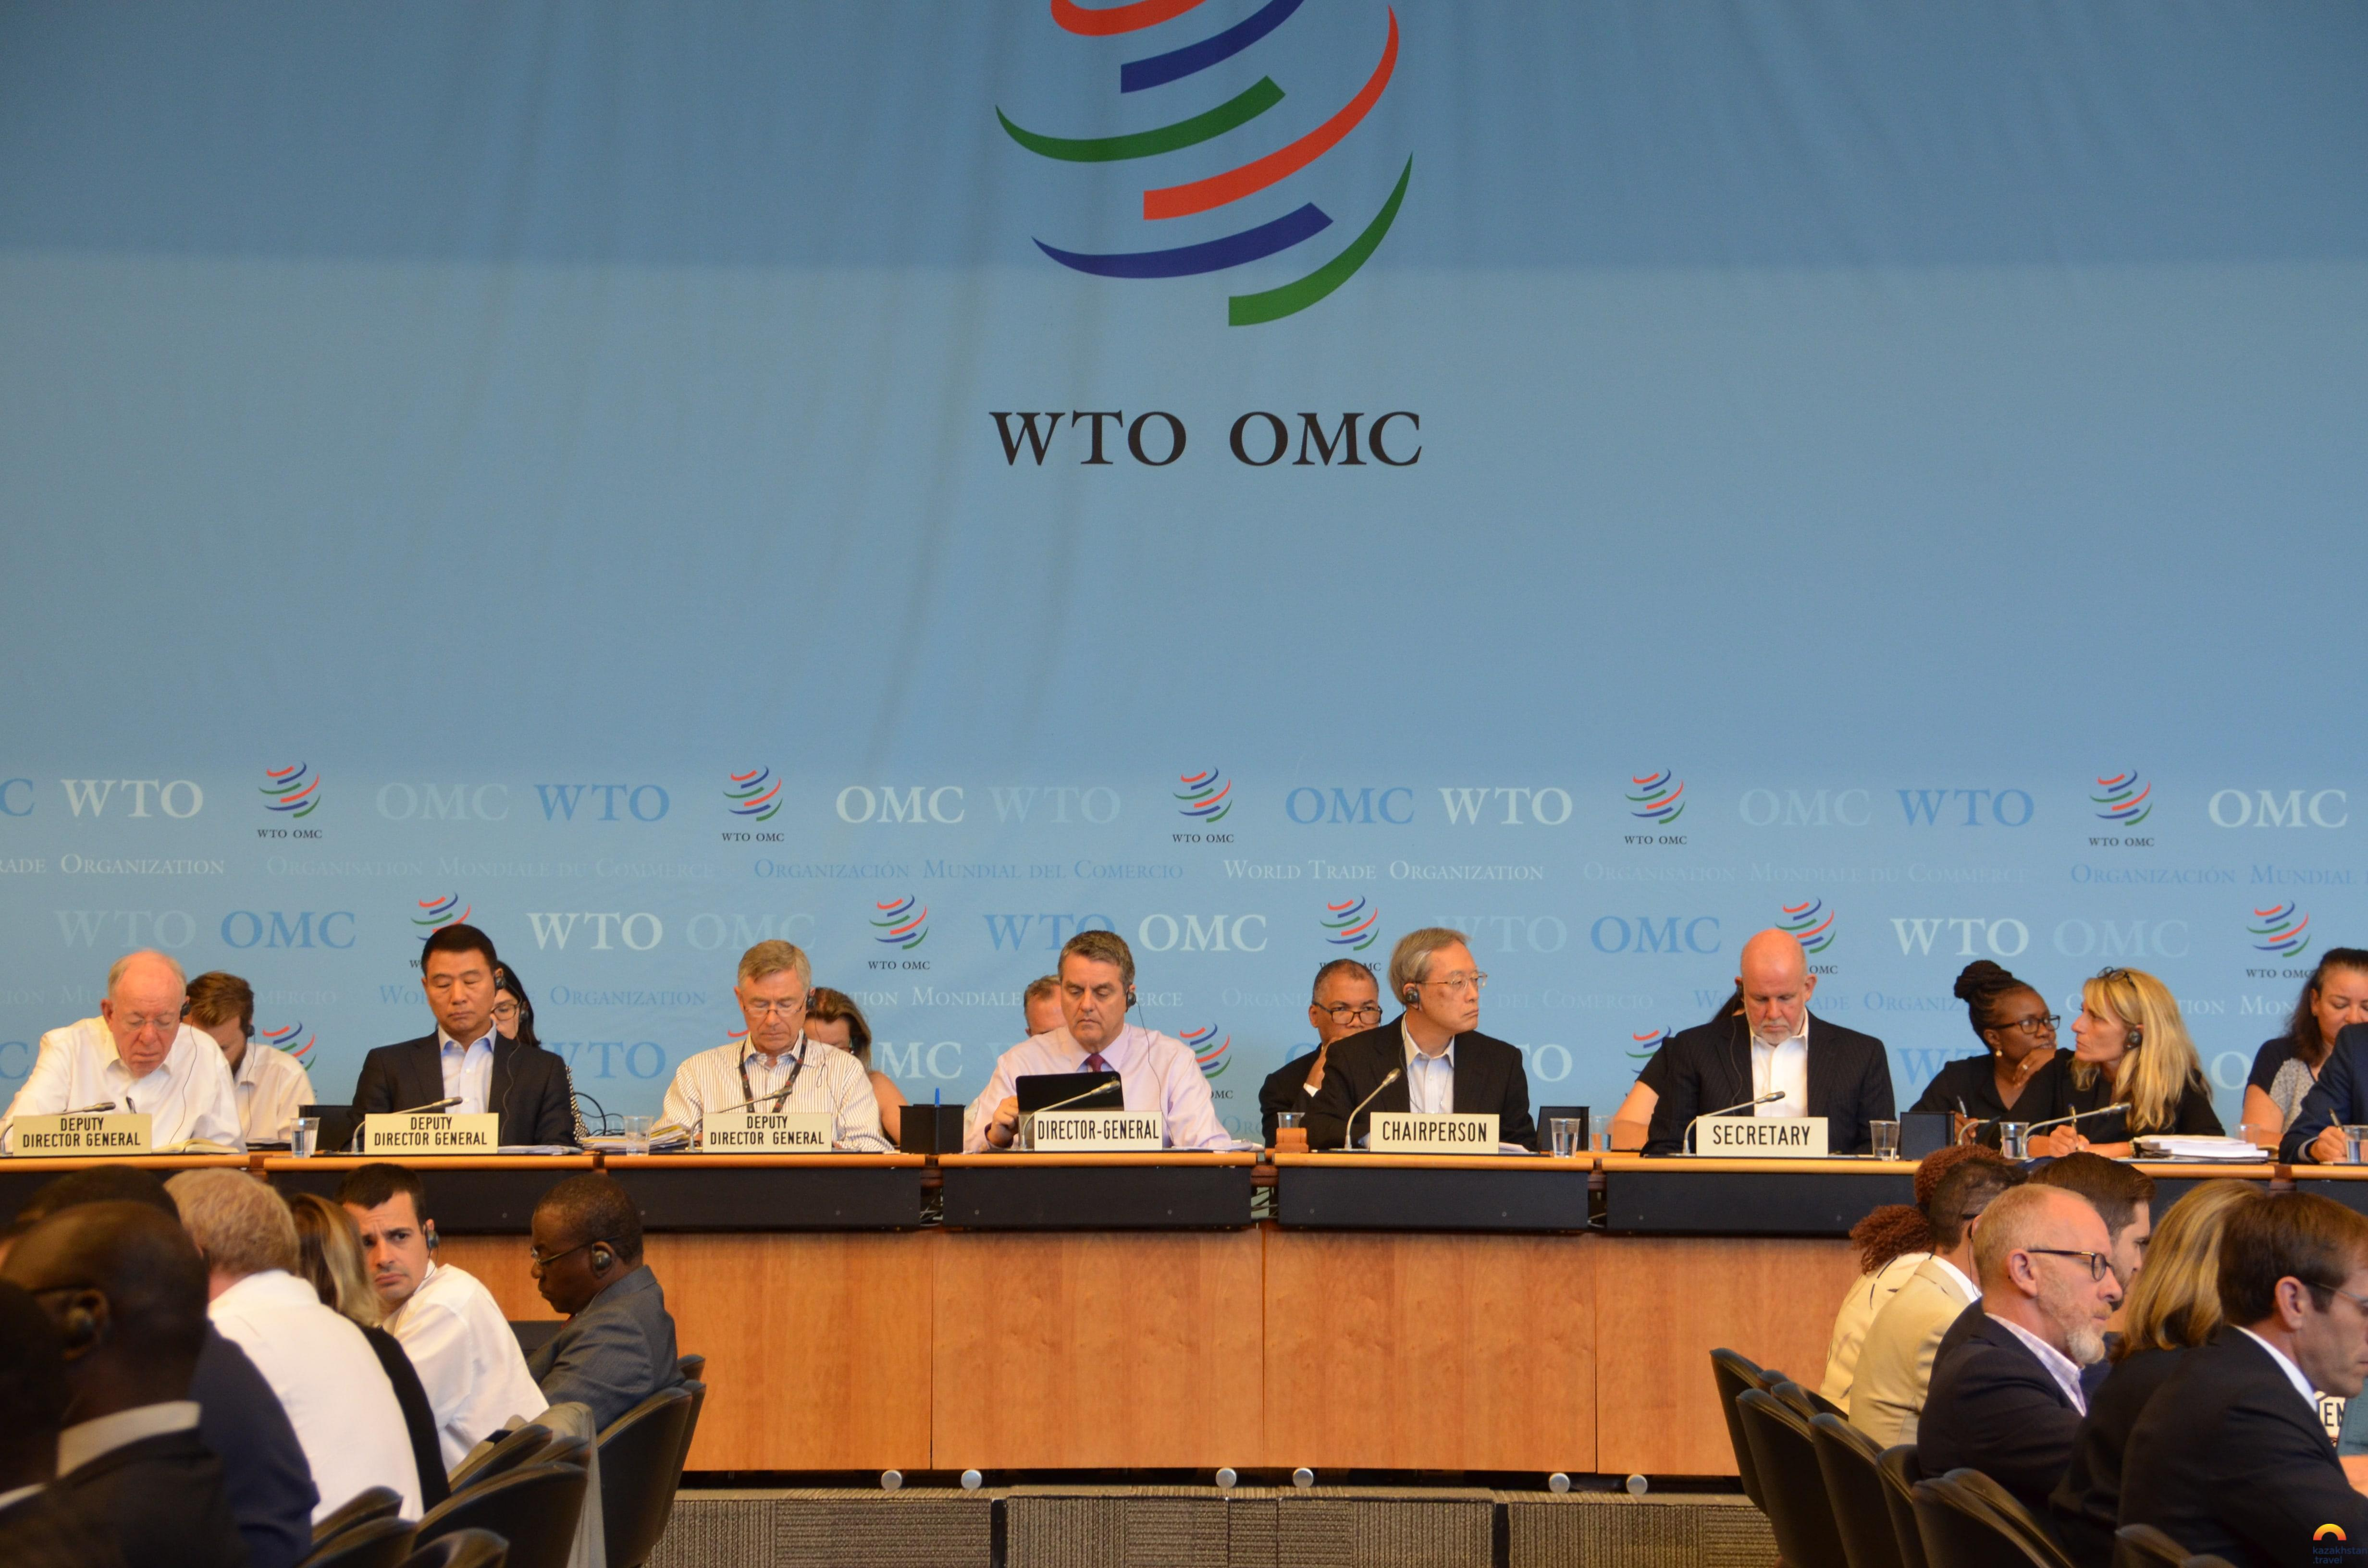 12th WTO Ministerial Conference